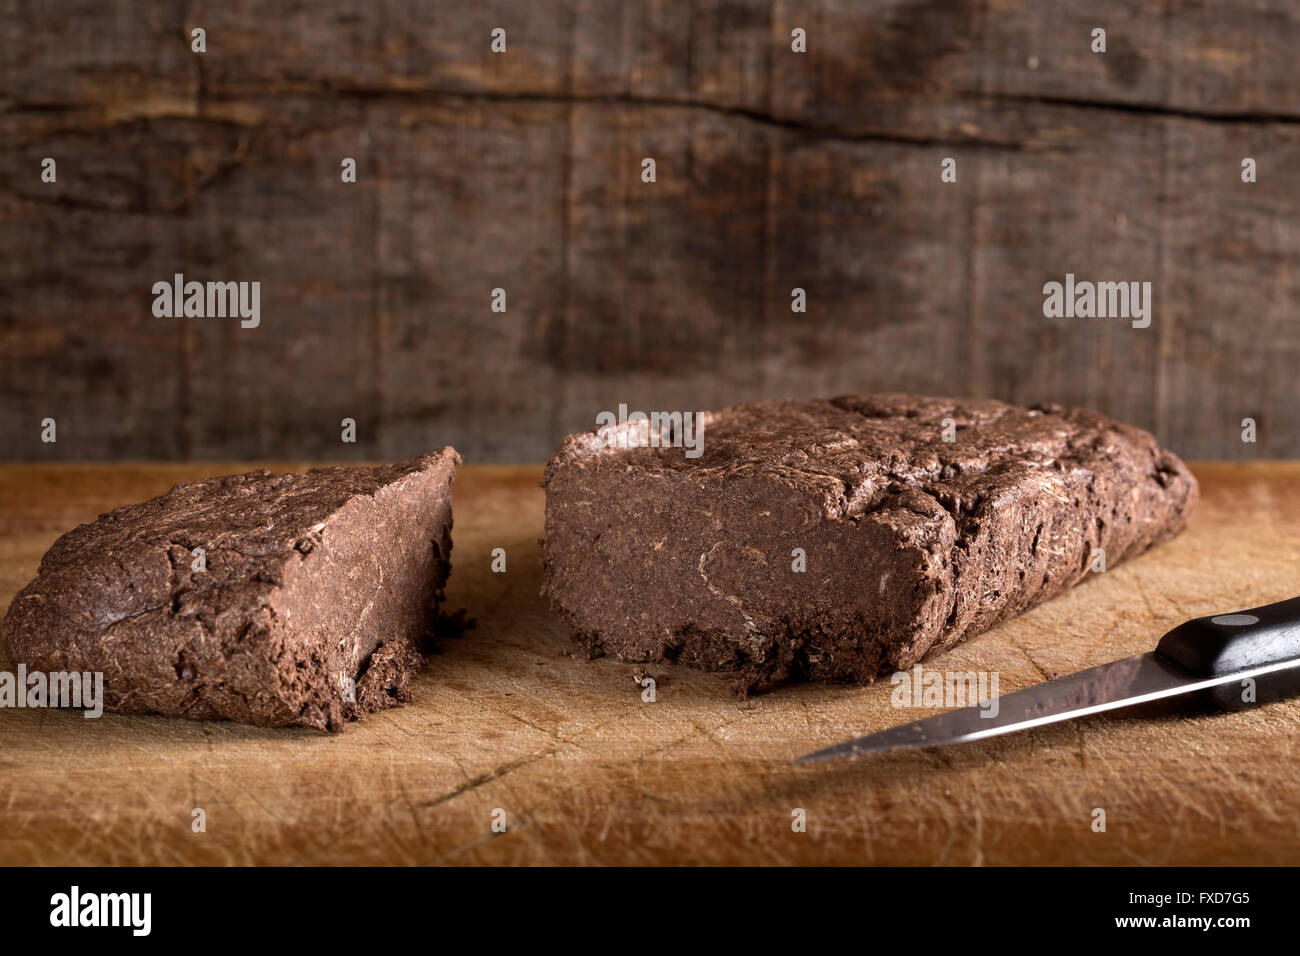 Piece of chocolate halvah over wooden background - Stock Image